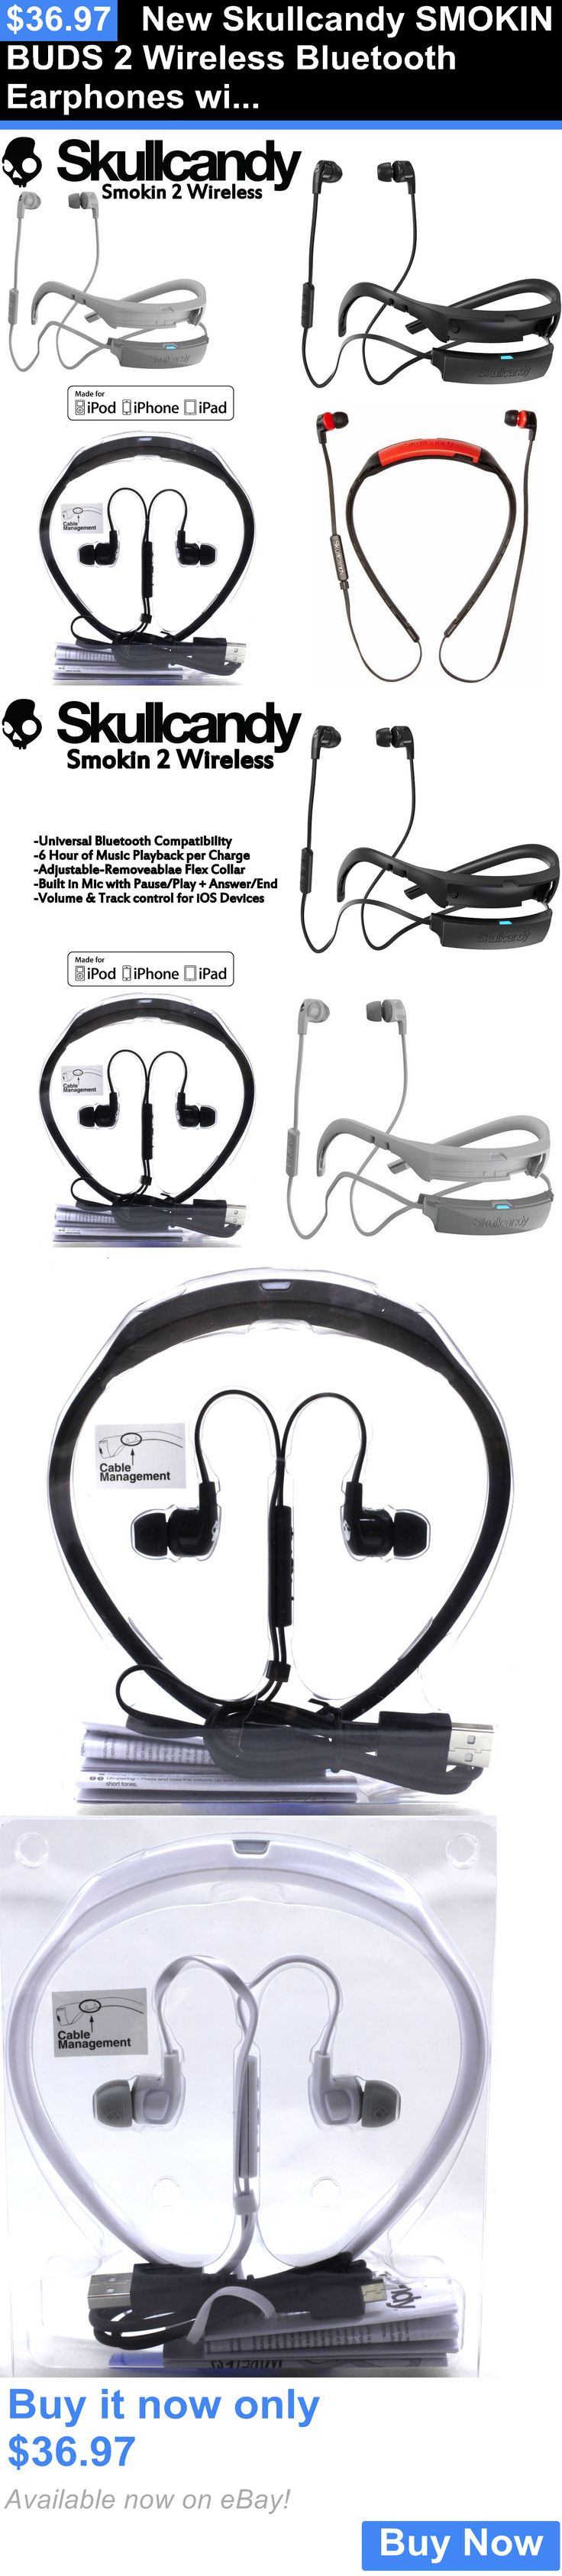 electronics: New Skullcandy Smokin Buds 2 Wireless Bluetooth Earphones With Mic Black White BUY IT NOW ONLY: $36.97